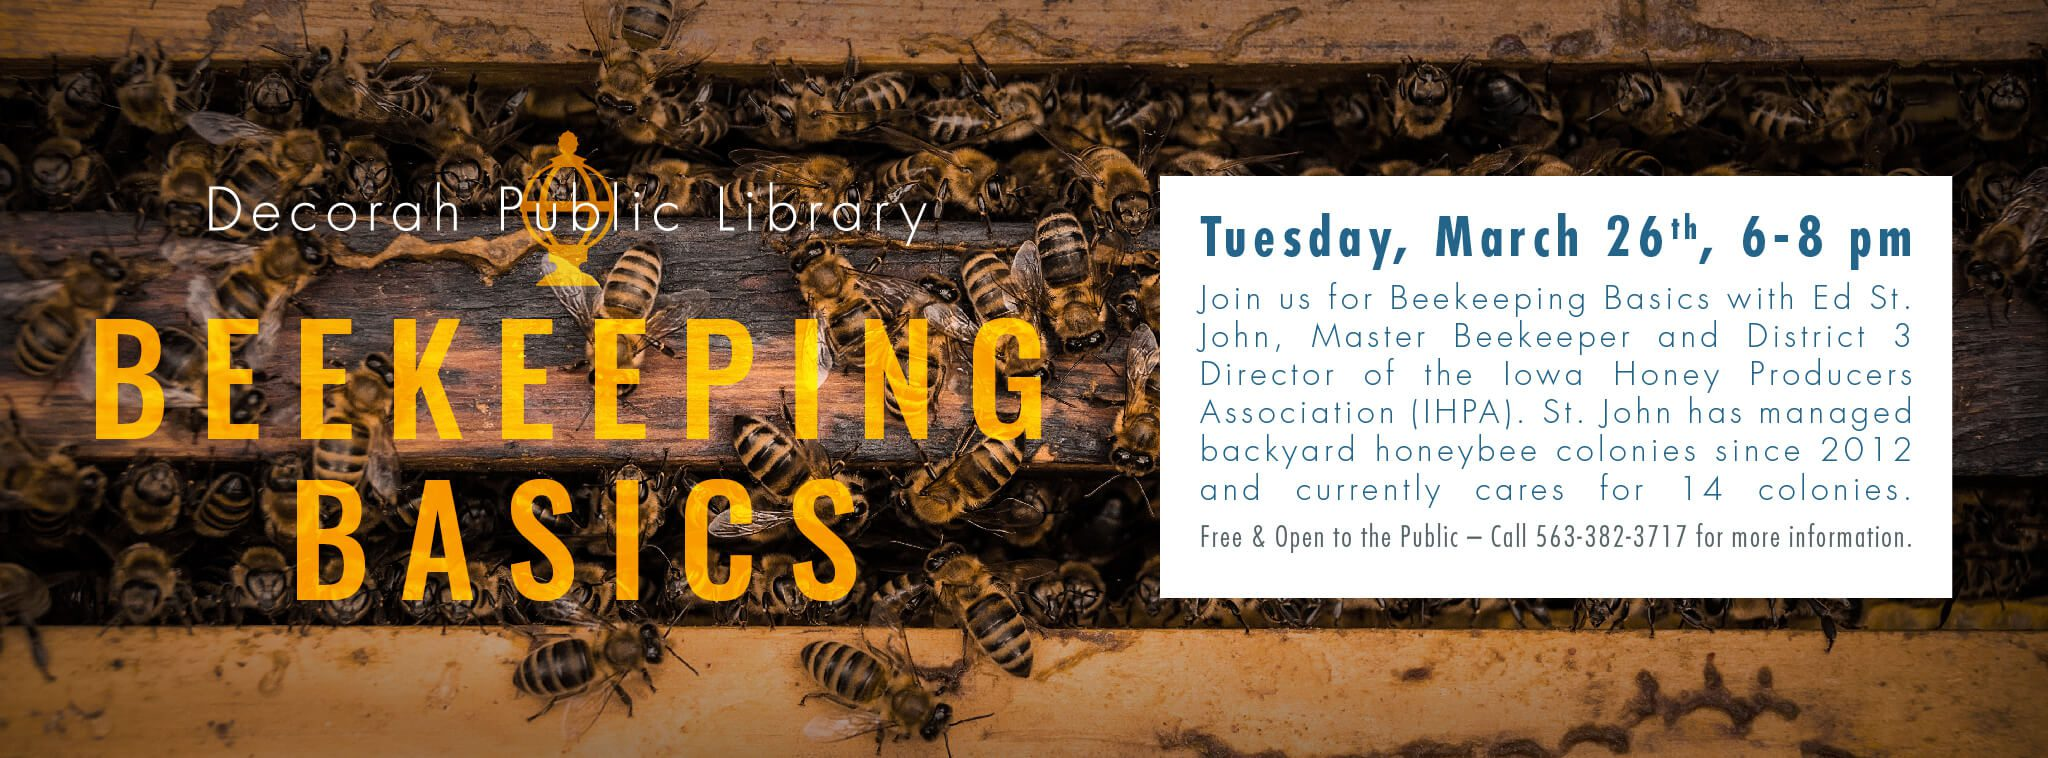 Beekeeping Basics March 26th